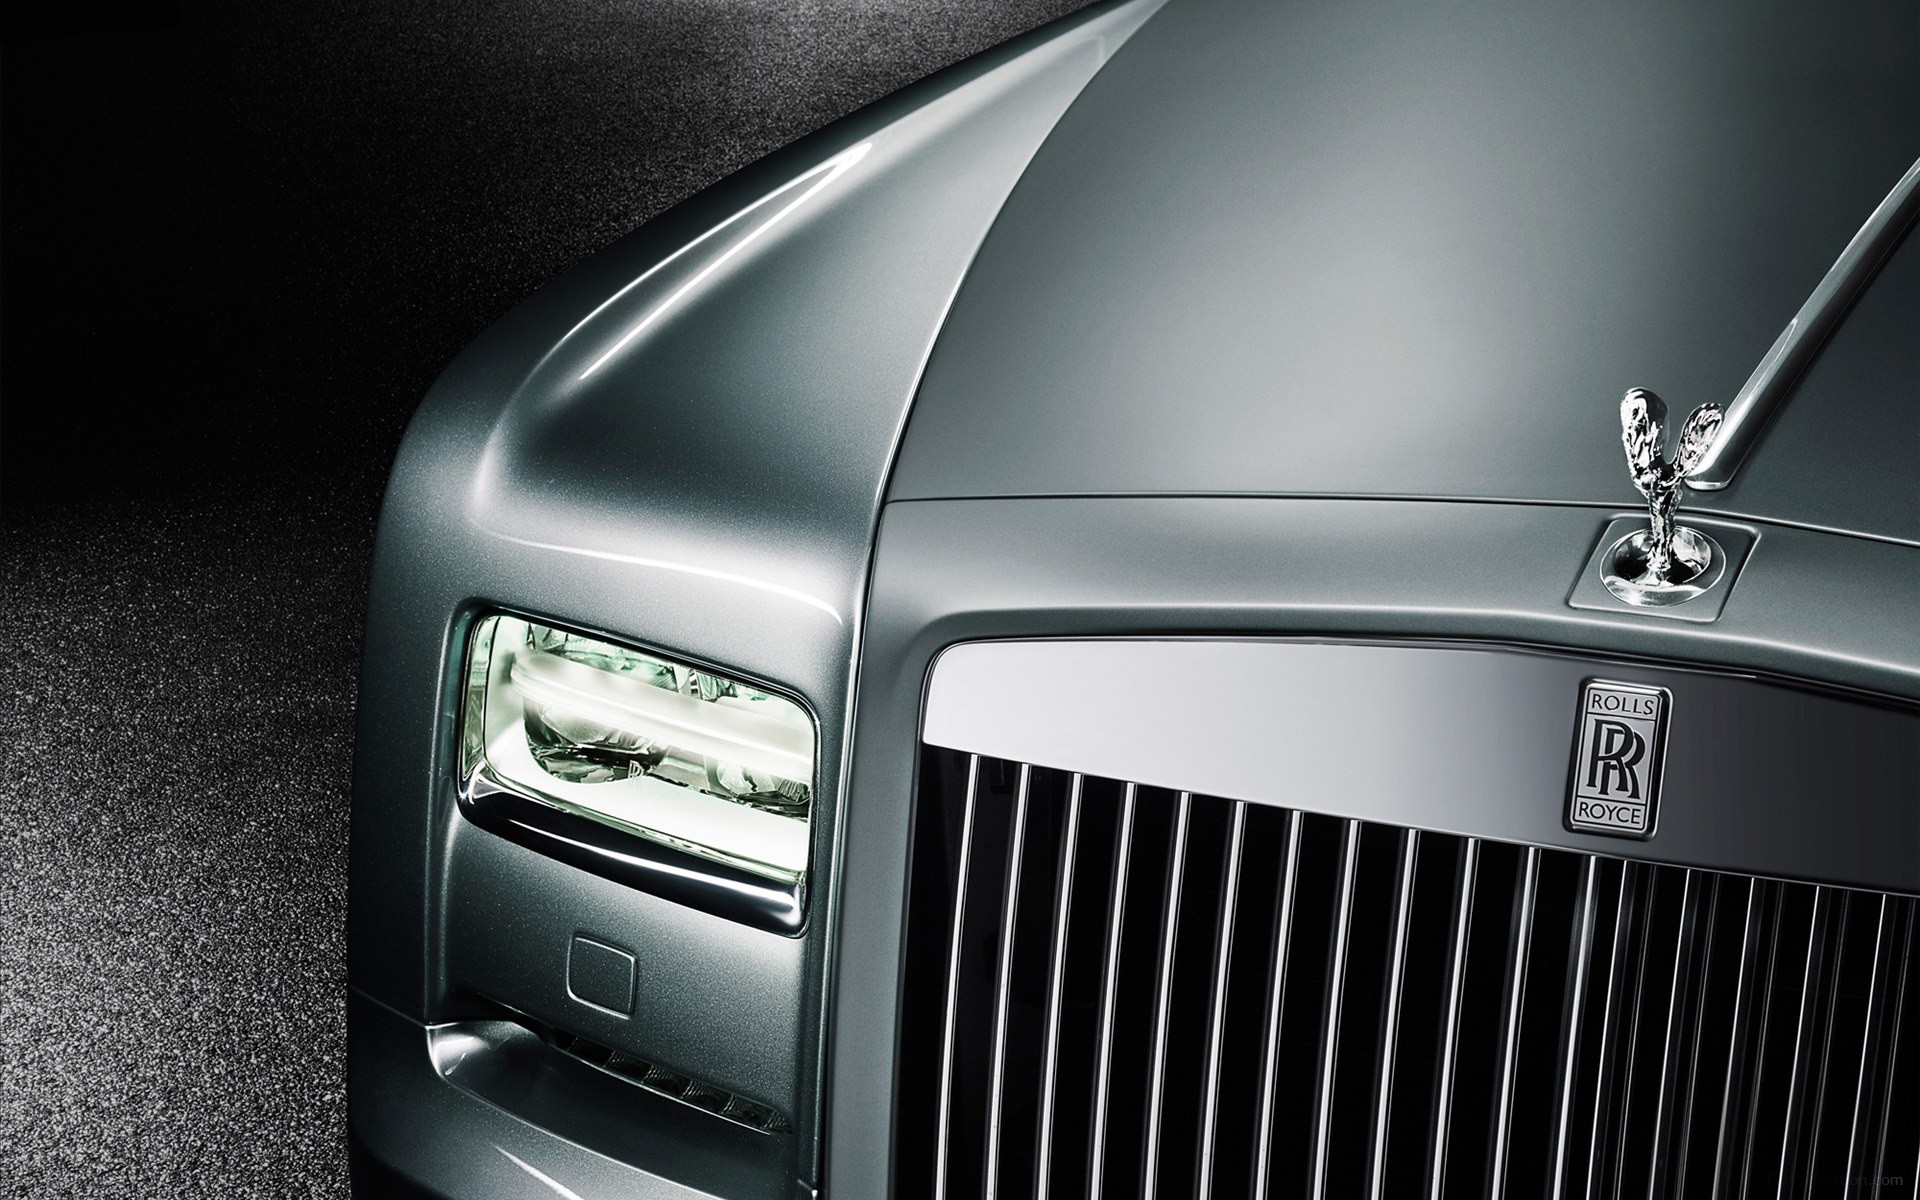 Rolls Royce Phatom Wallpaper | HD Car Wallpapers | ID #3013